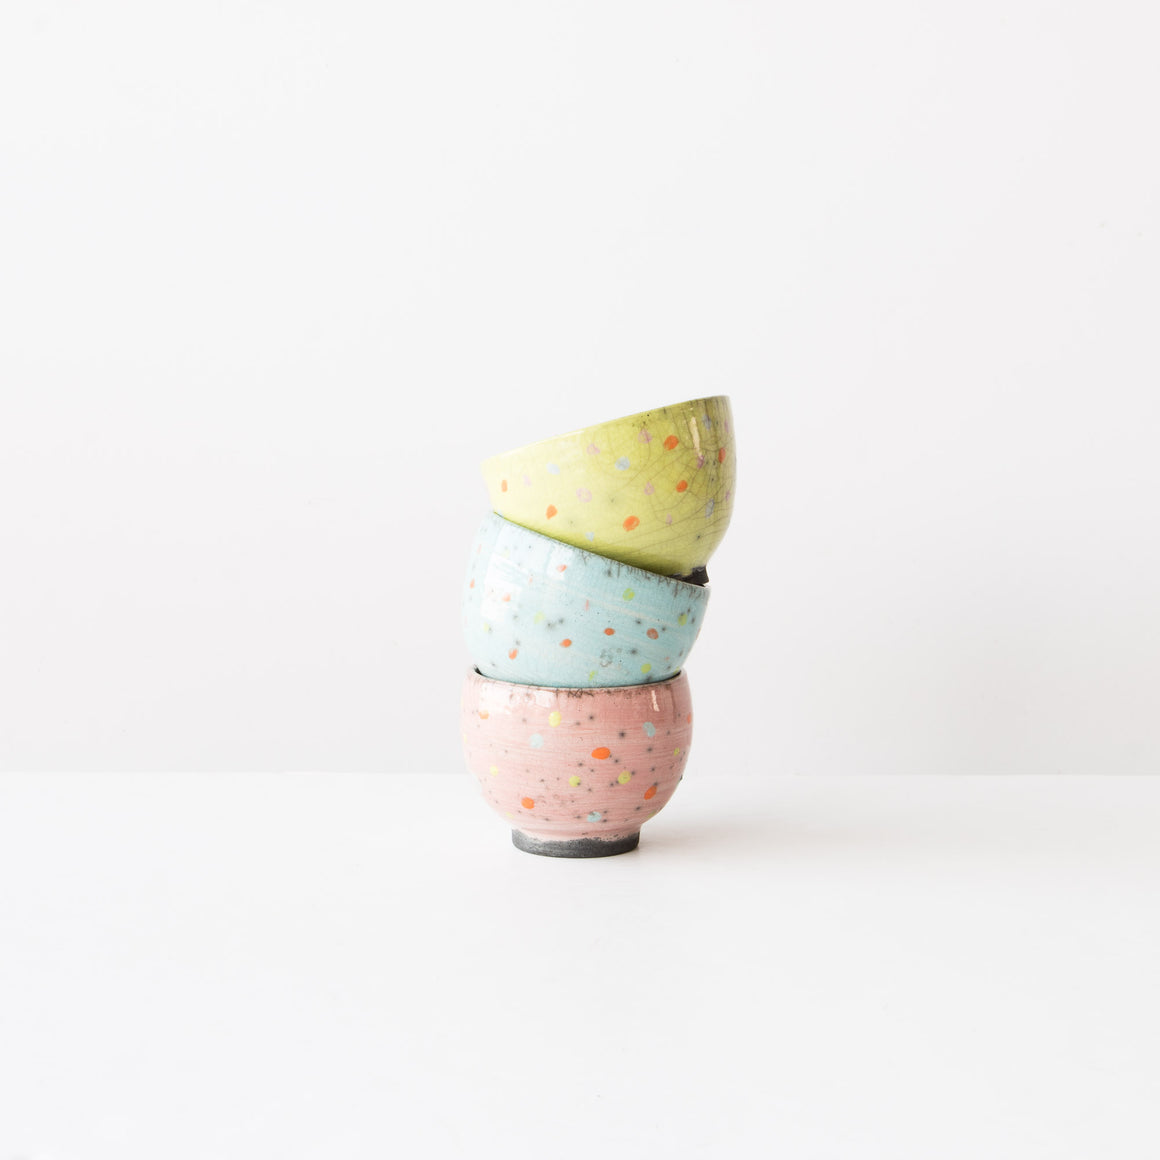 A Set of 3 Multicolored Polkadots Raku Bowls: Lime, Pink & Turquoise. - Sold by Chic & Basta